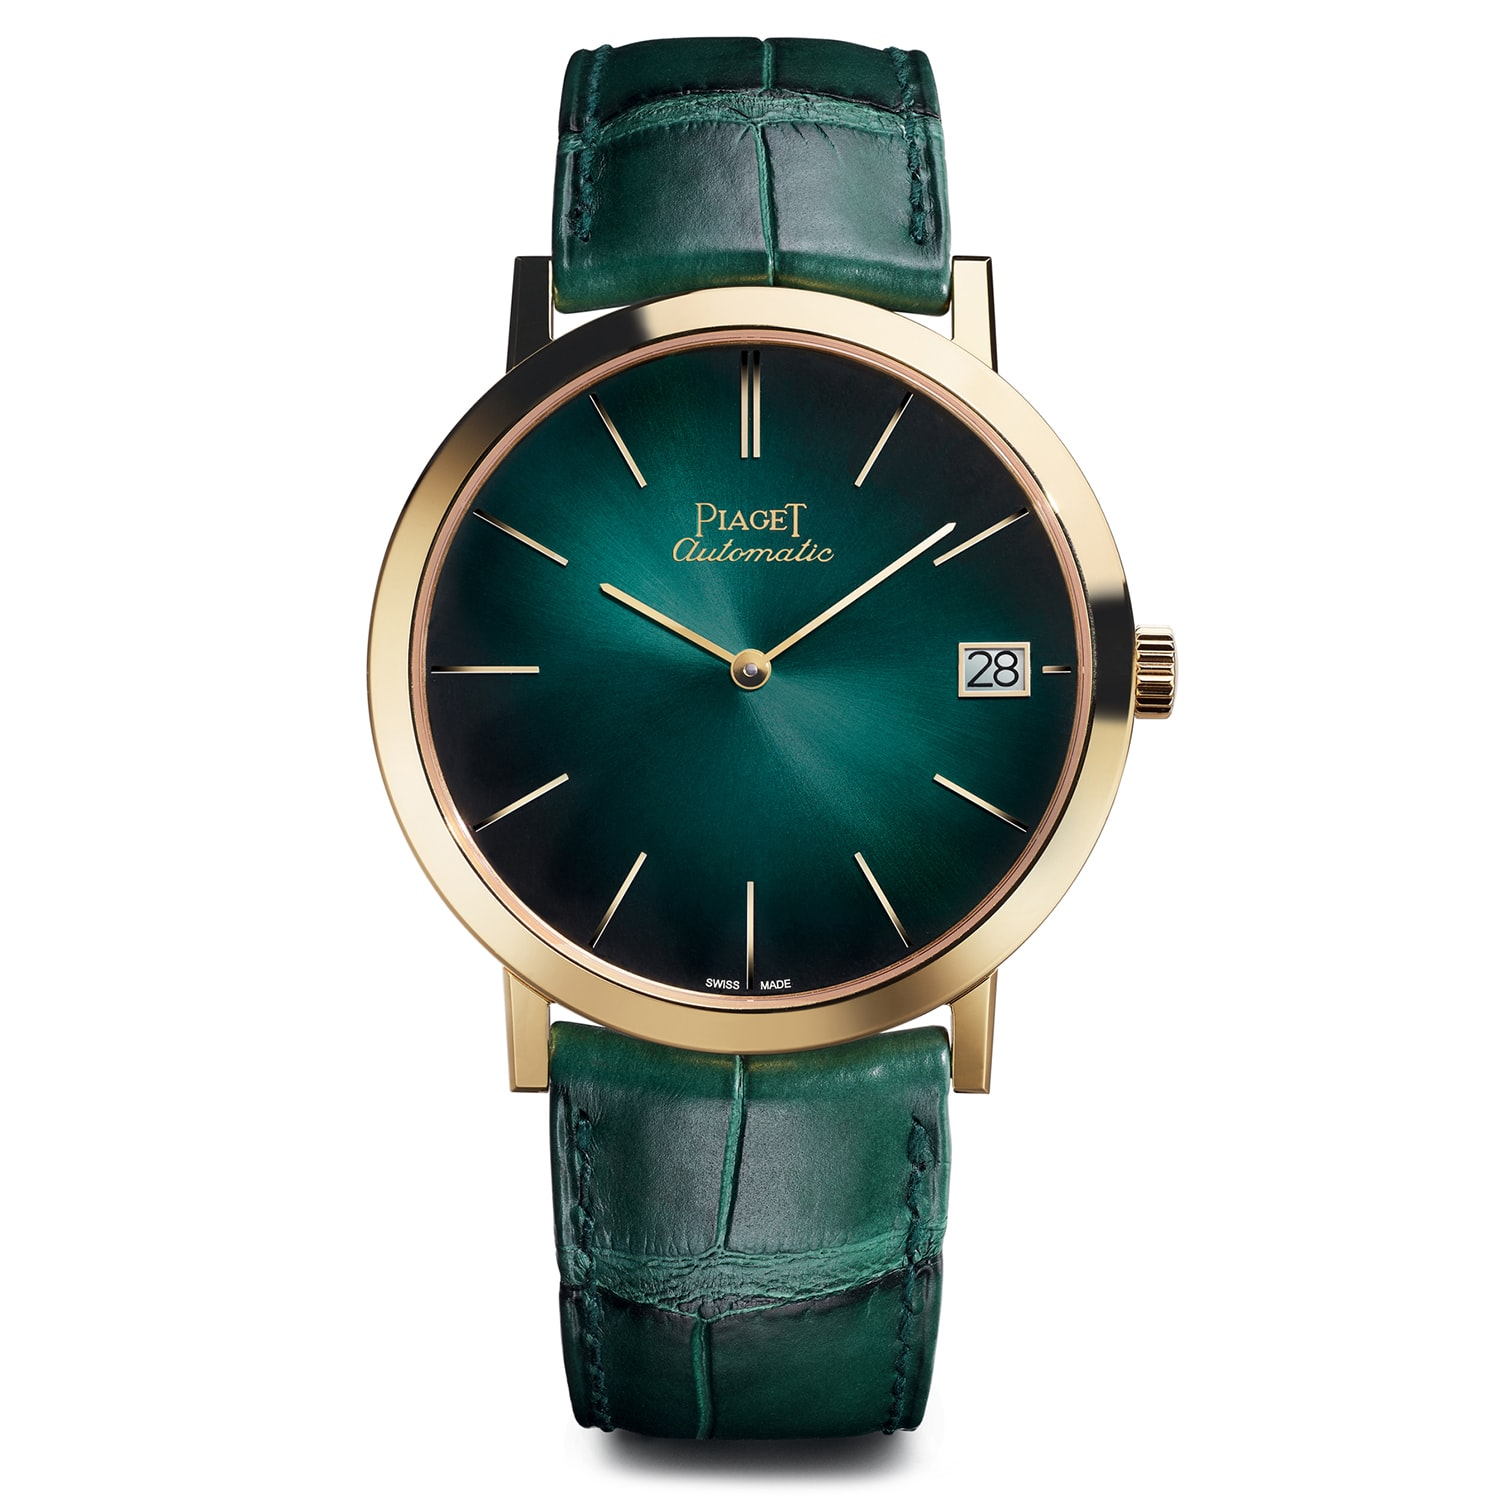 Yellow gold with green dial Altiplano with date 40mm. Introducing: The Piaget Altiplano Automatic With Date, Going Back To The Roots Of Piaget (Live Pics + Pricing) Introducing: The Piaget Altiplano Automatic With Date, Going Back To The Roots Of Piaget (Live Pics + Pricing) 1